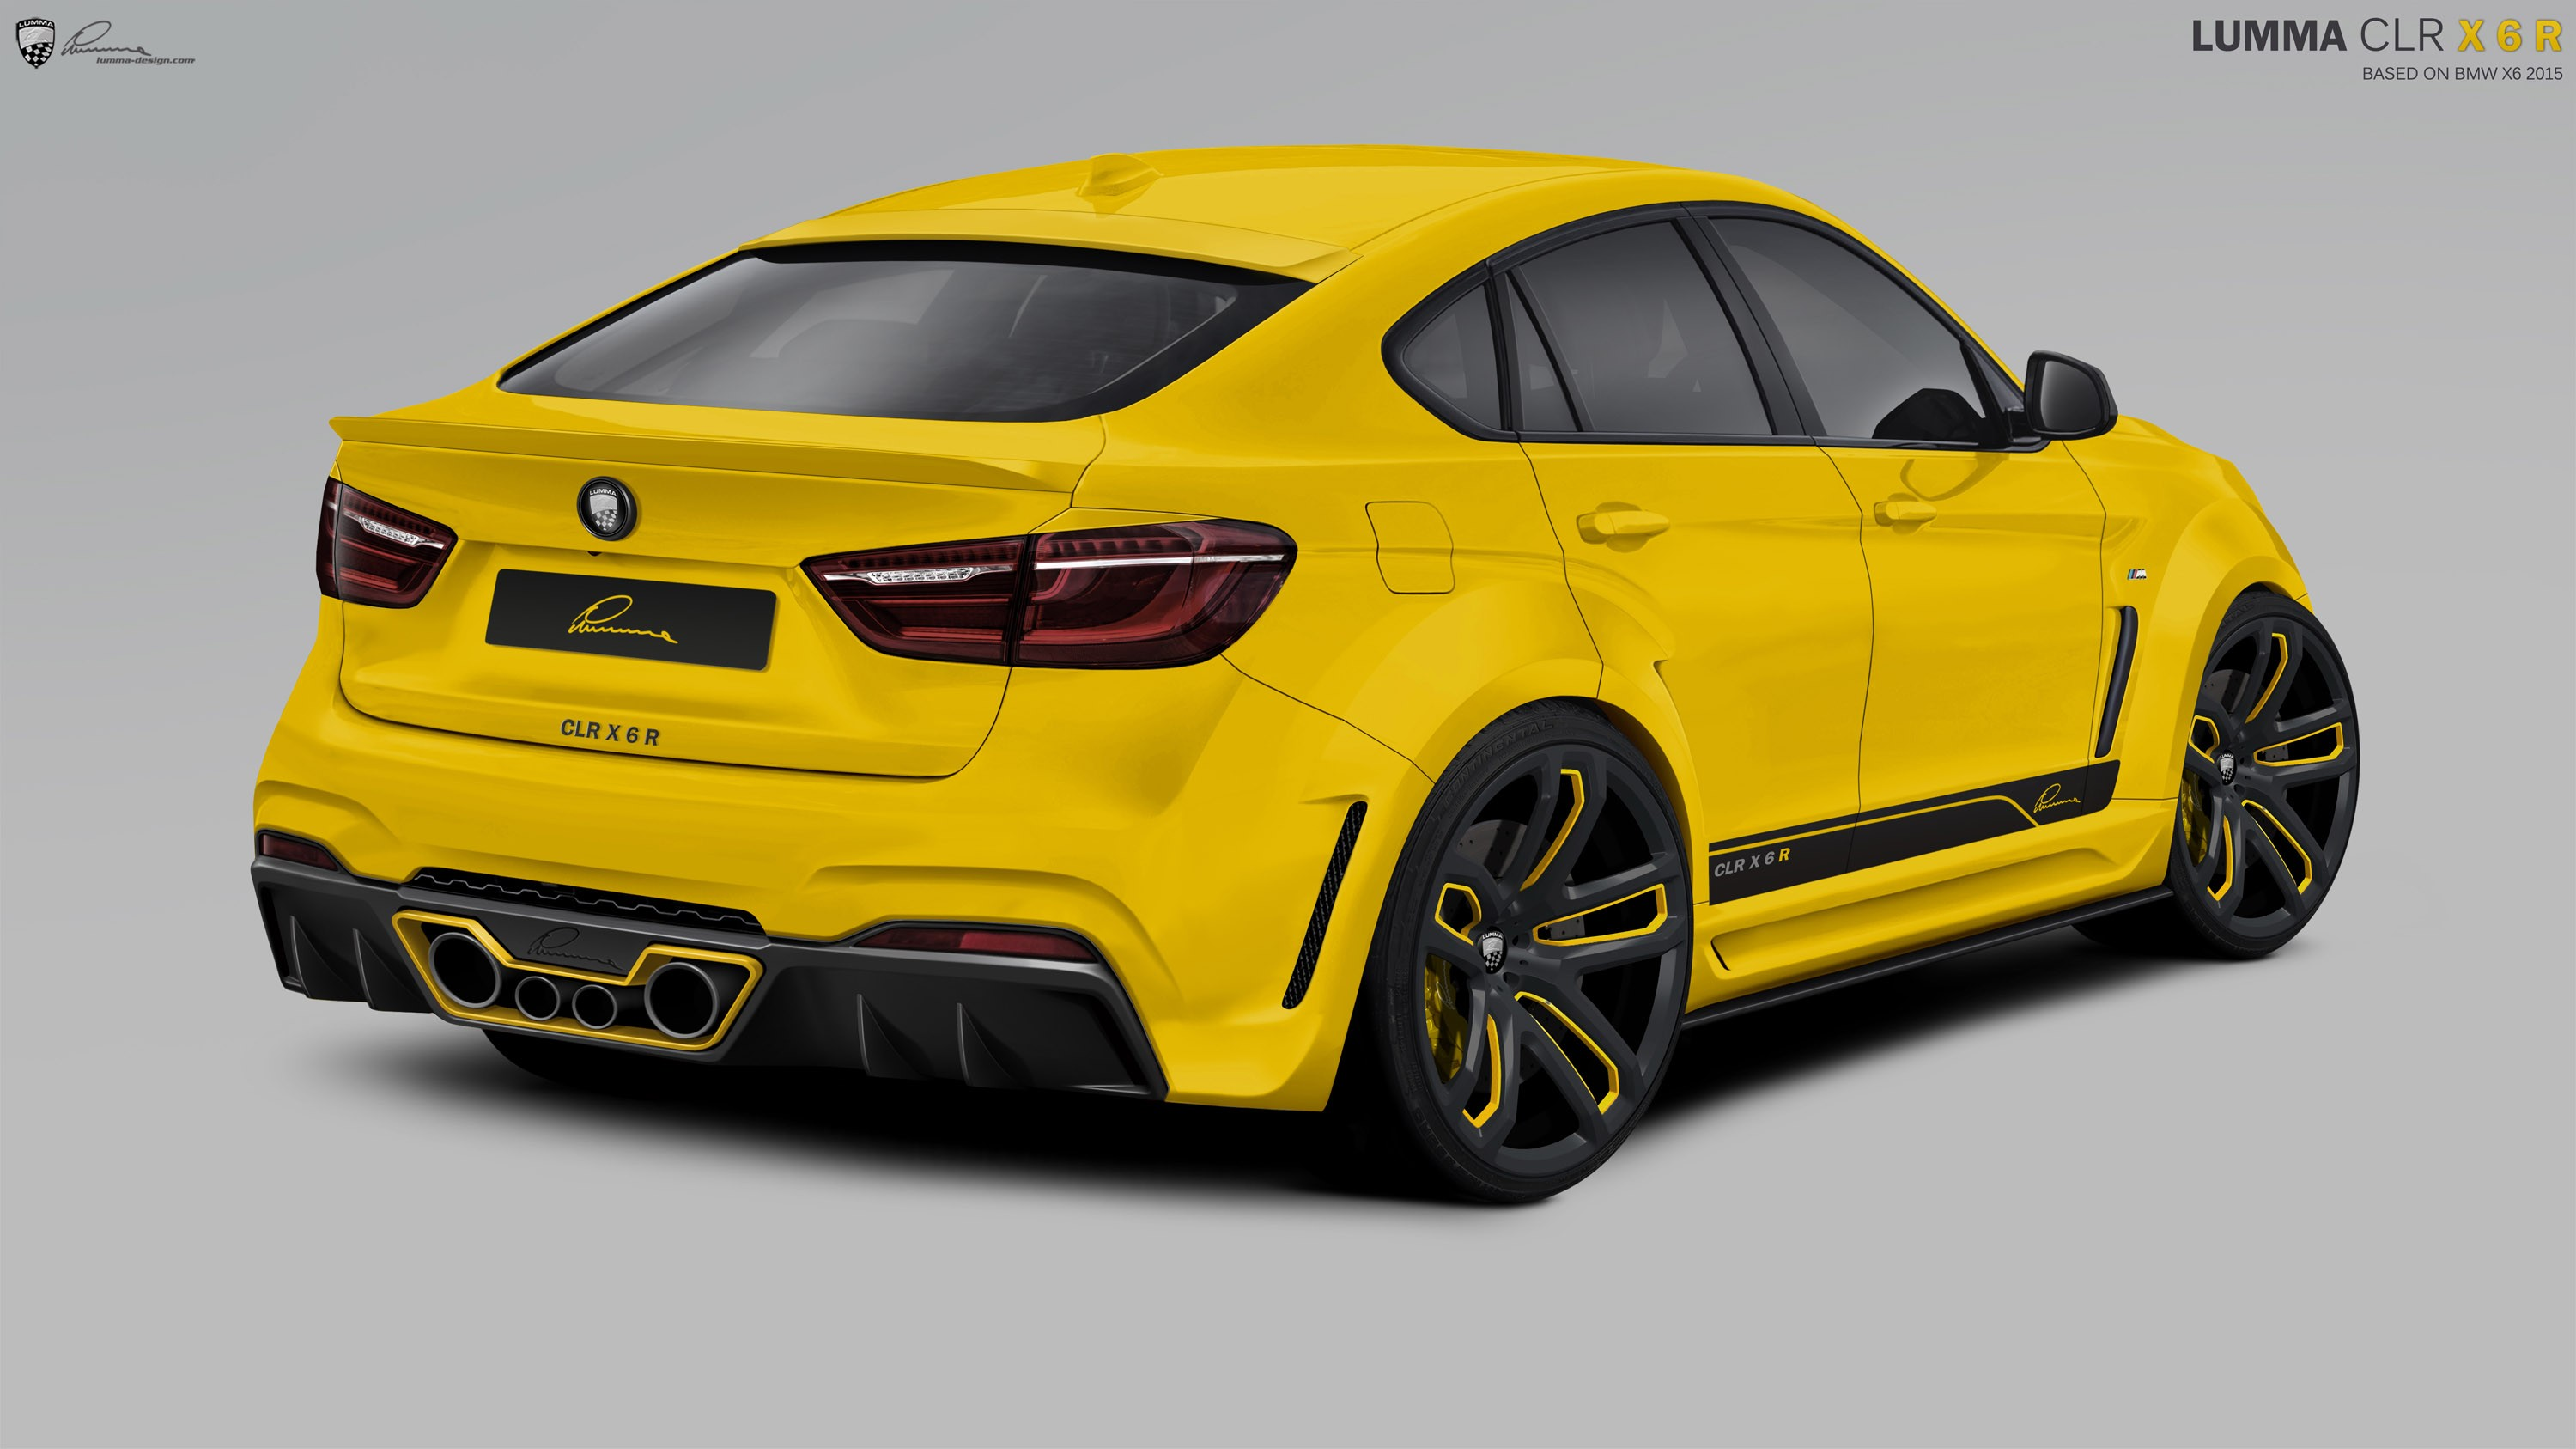 background - Speciální BMW X6 CLR R od Lumma Design